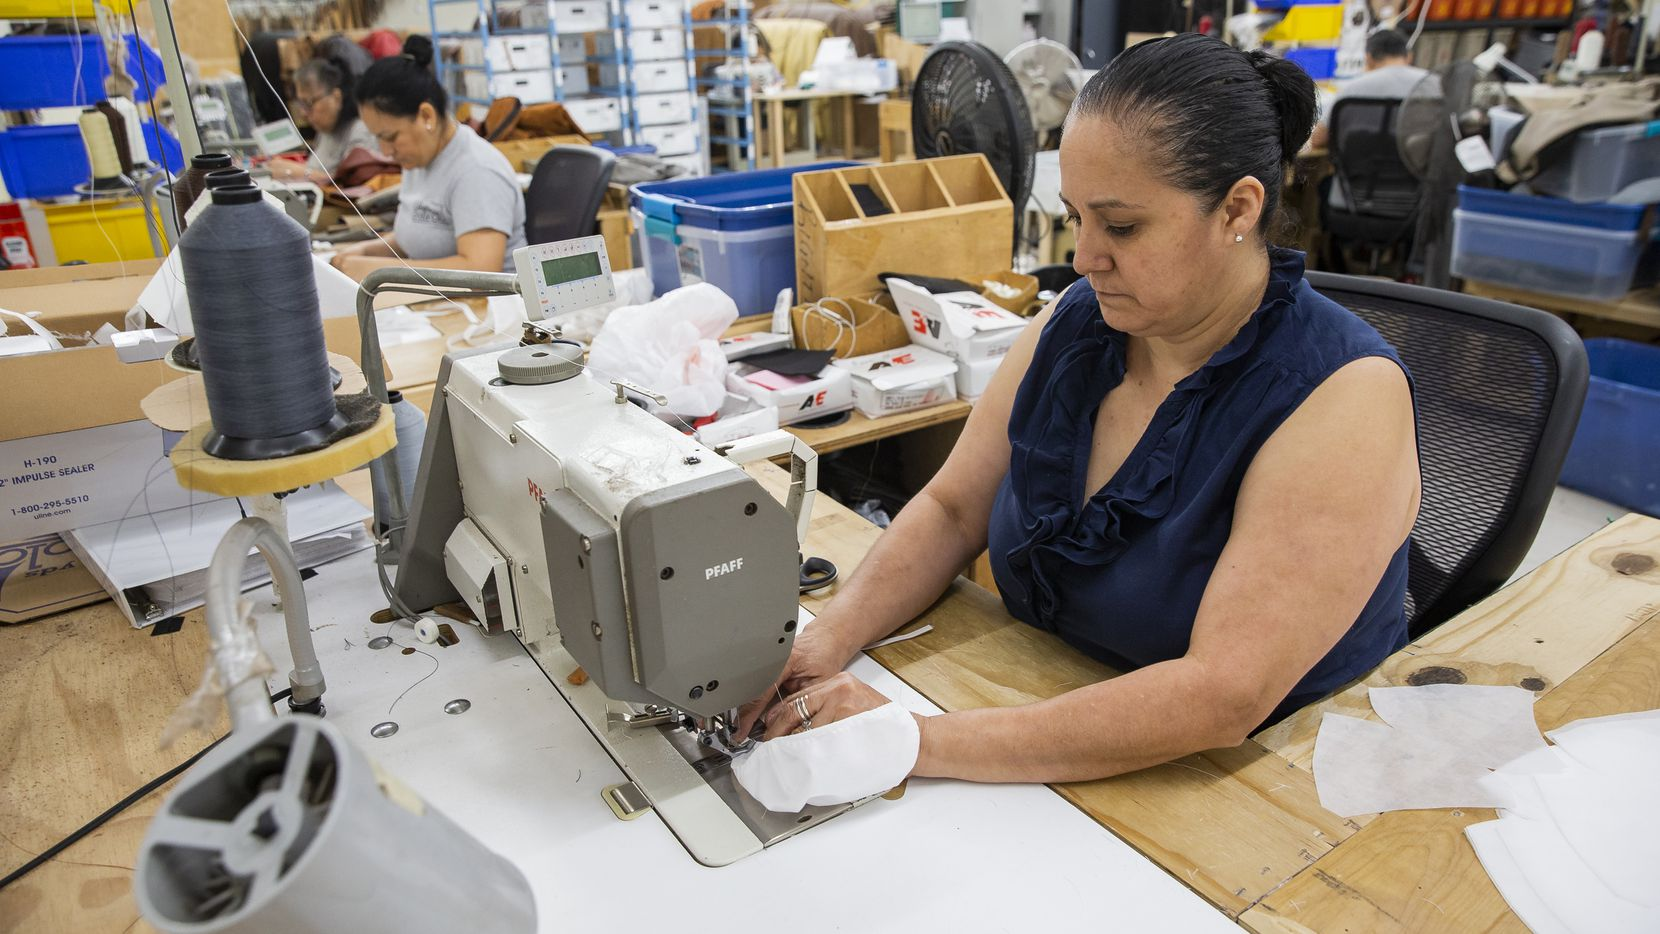 Seamstress Maria Meza makes a mask using fabric normally used as fiber for back cushions at the Leather Sofa Co. factory on March 27, 2020 in Lewisville.